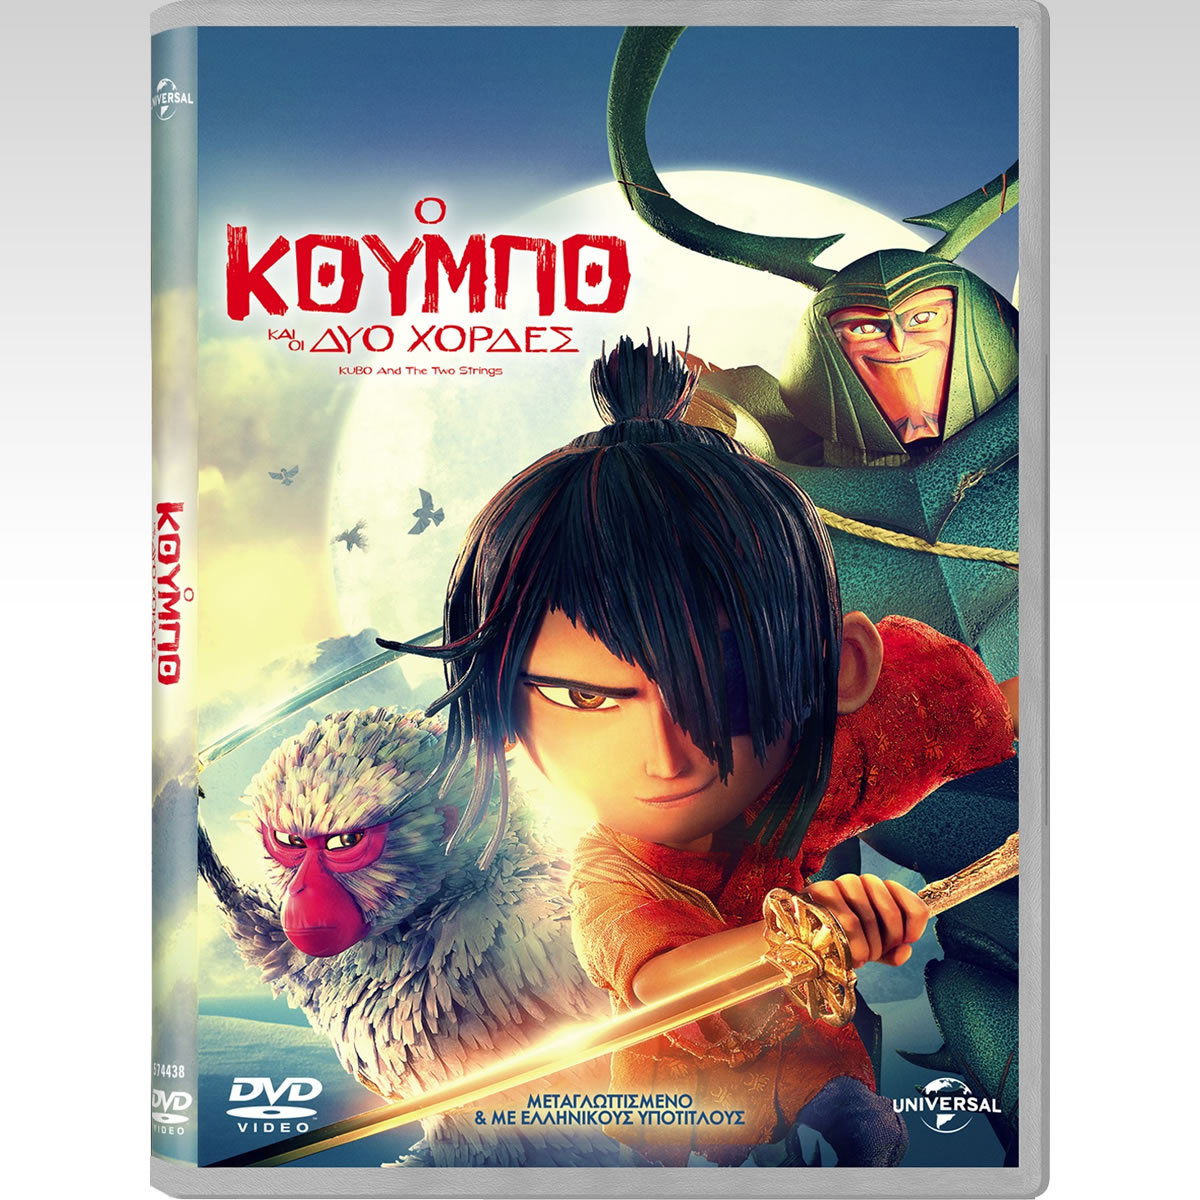 KUBO AND THE TWO STRINGS - Ο ΚΟΥΜΠΟ ΚΑΙ ΟΙ 2 ΧΟΡΔΕΣ (DVD) & ΜΕΤΑΓΛΩΤΤΙΣΜΕΝΟ ΣΤΑ ΕΛΛΗΝΙΚΑ